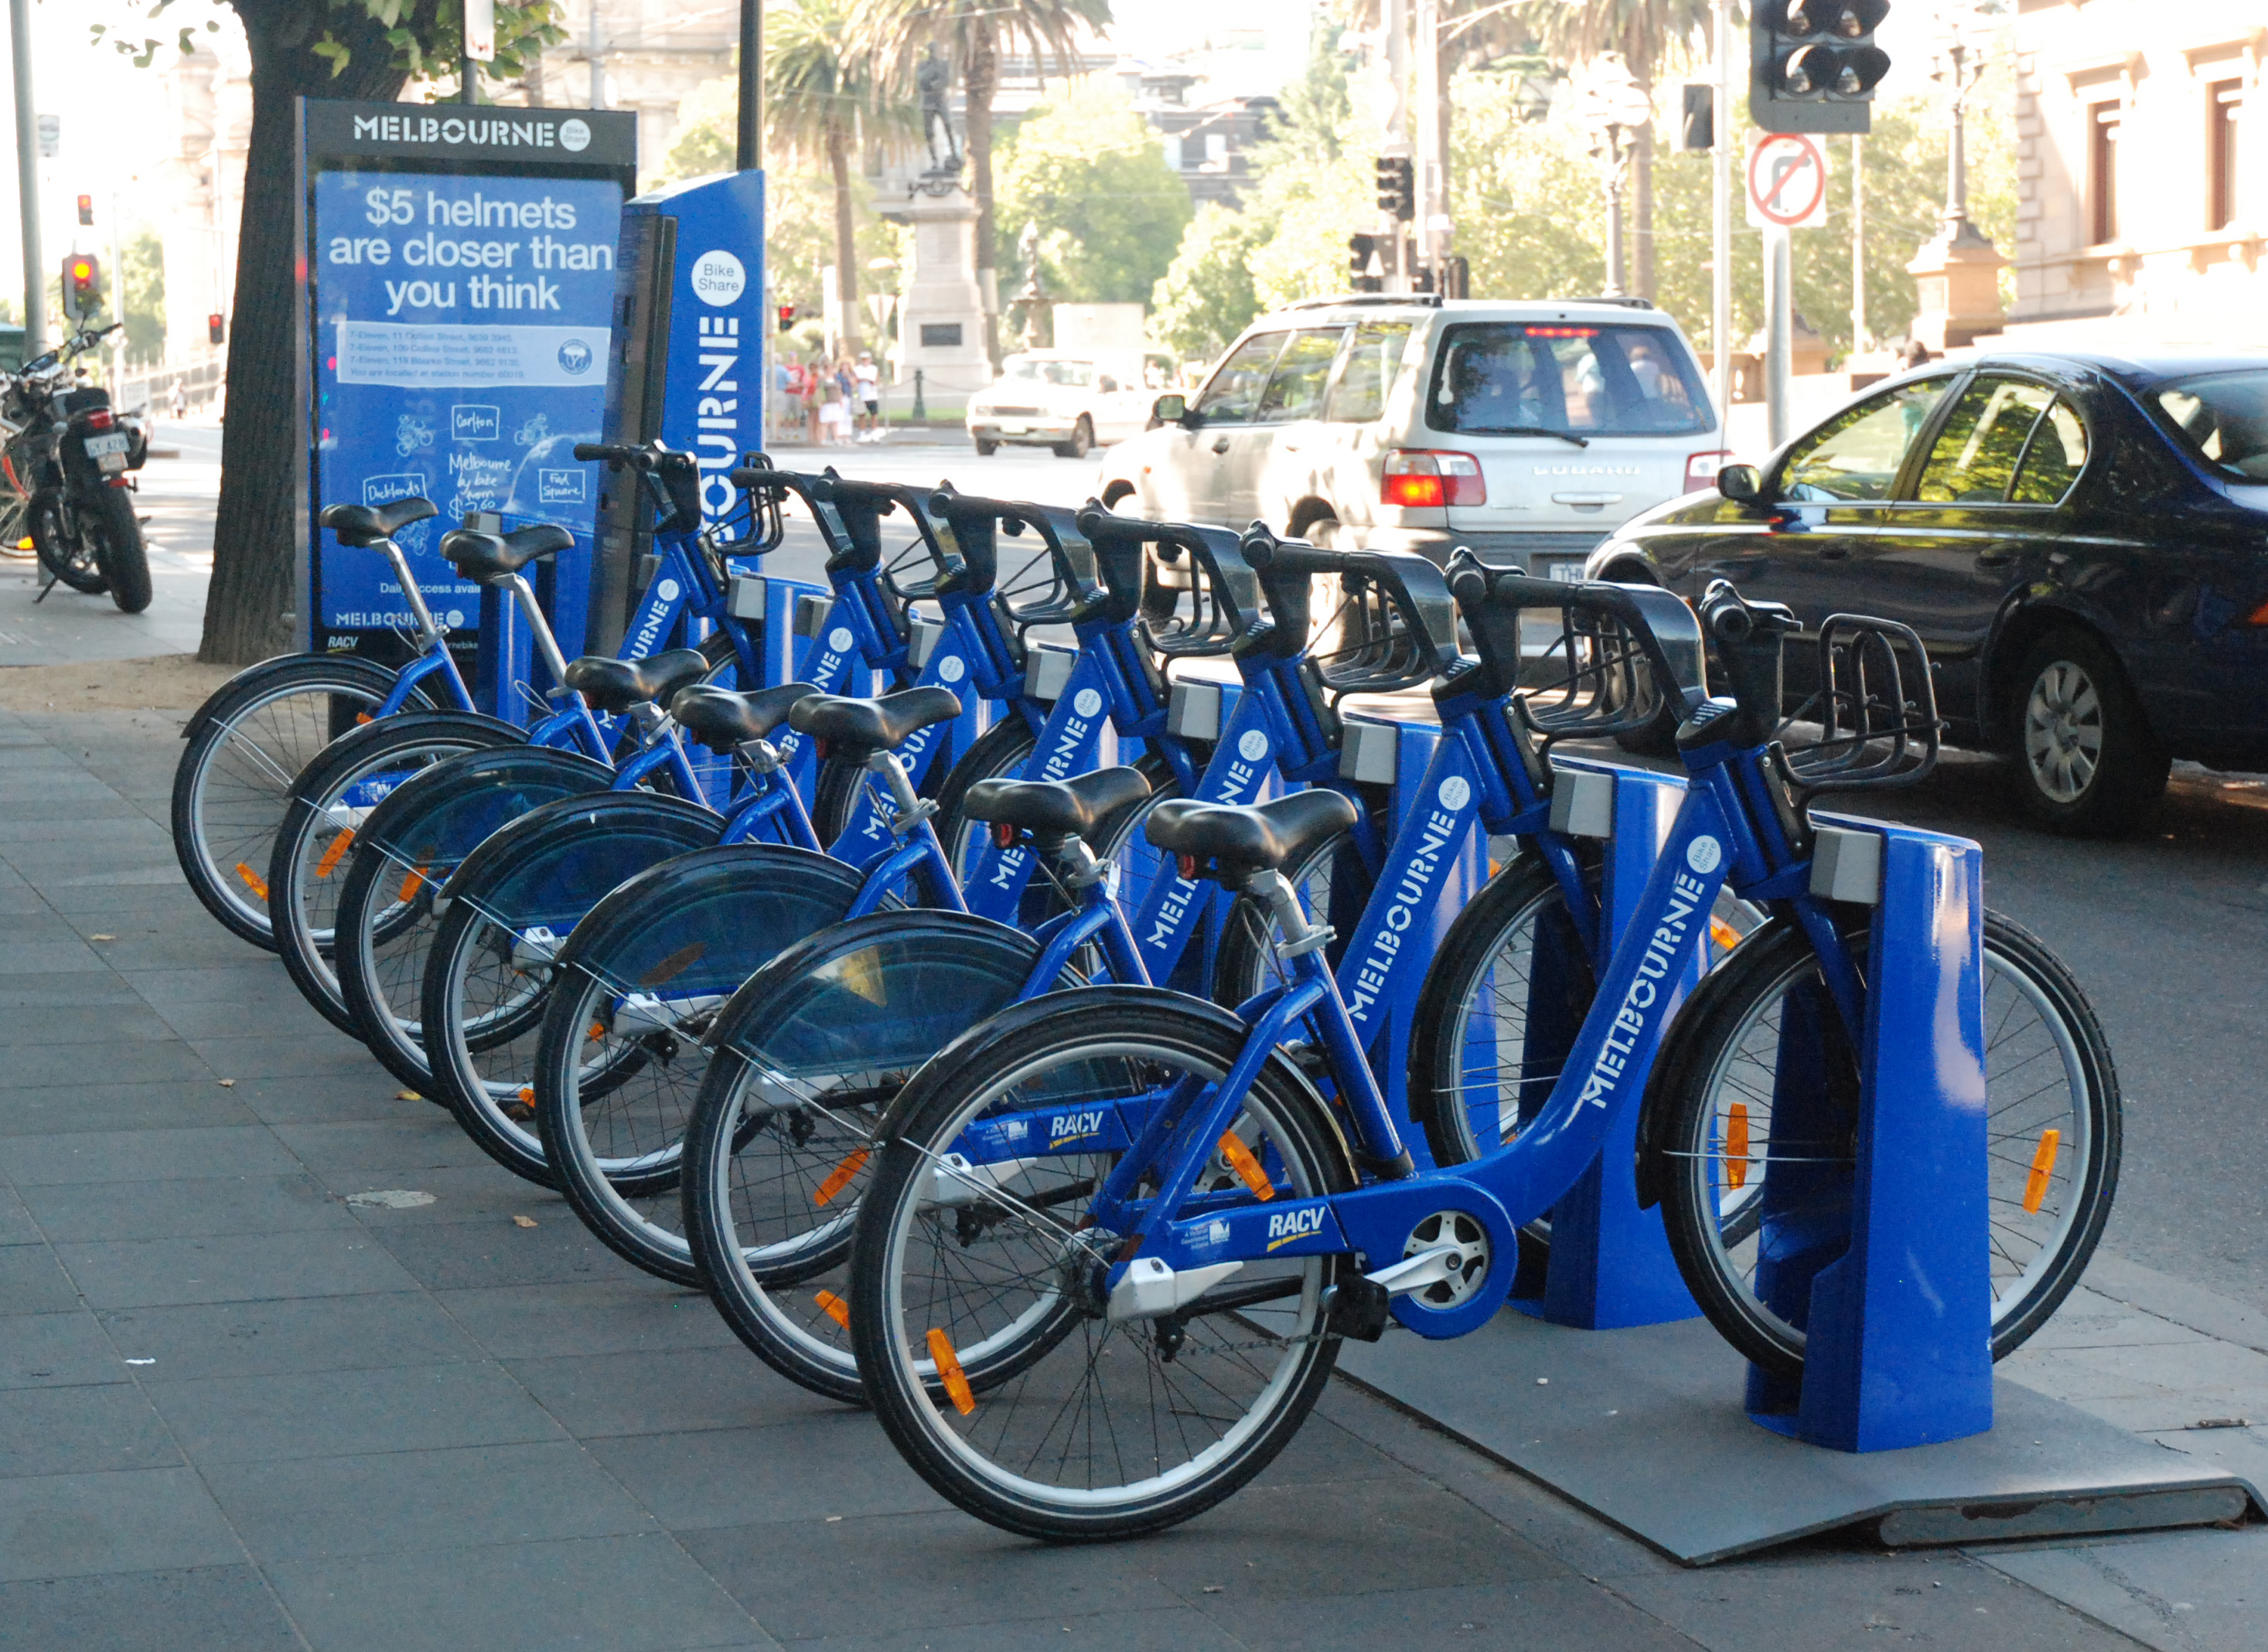 Blue Rental Bikes In Chicago A bicycle sharing station in